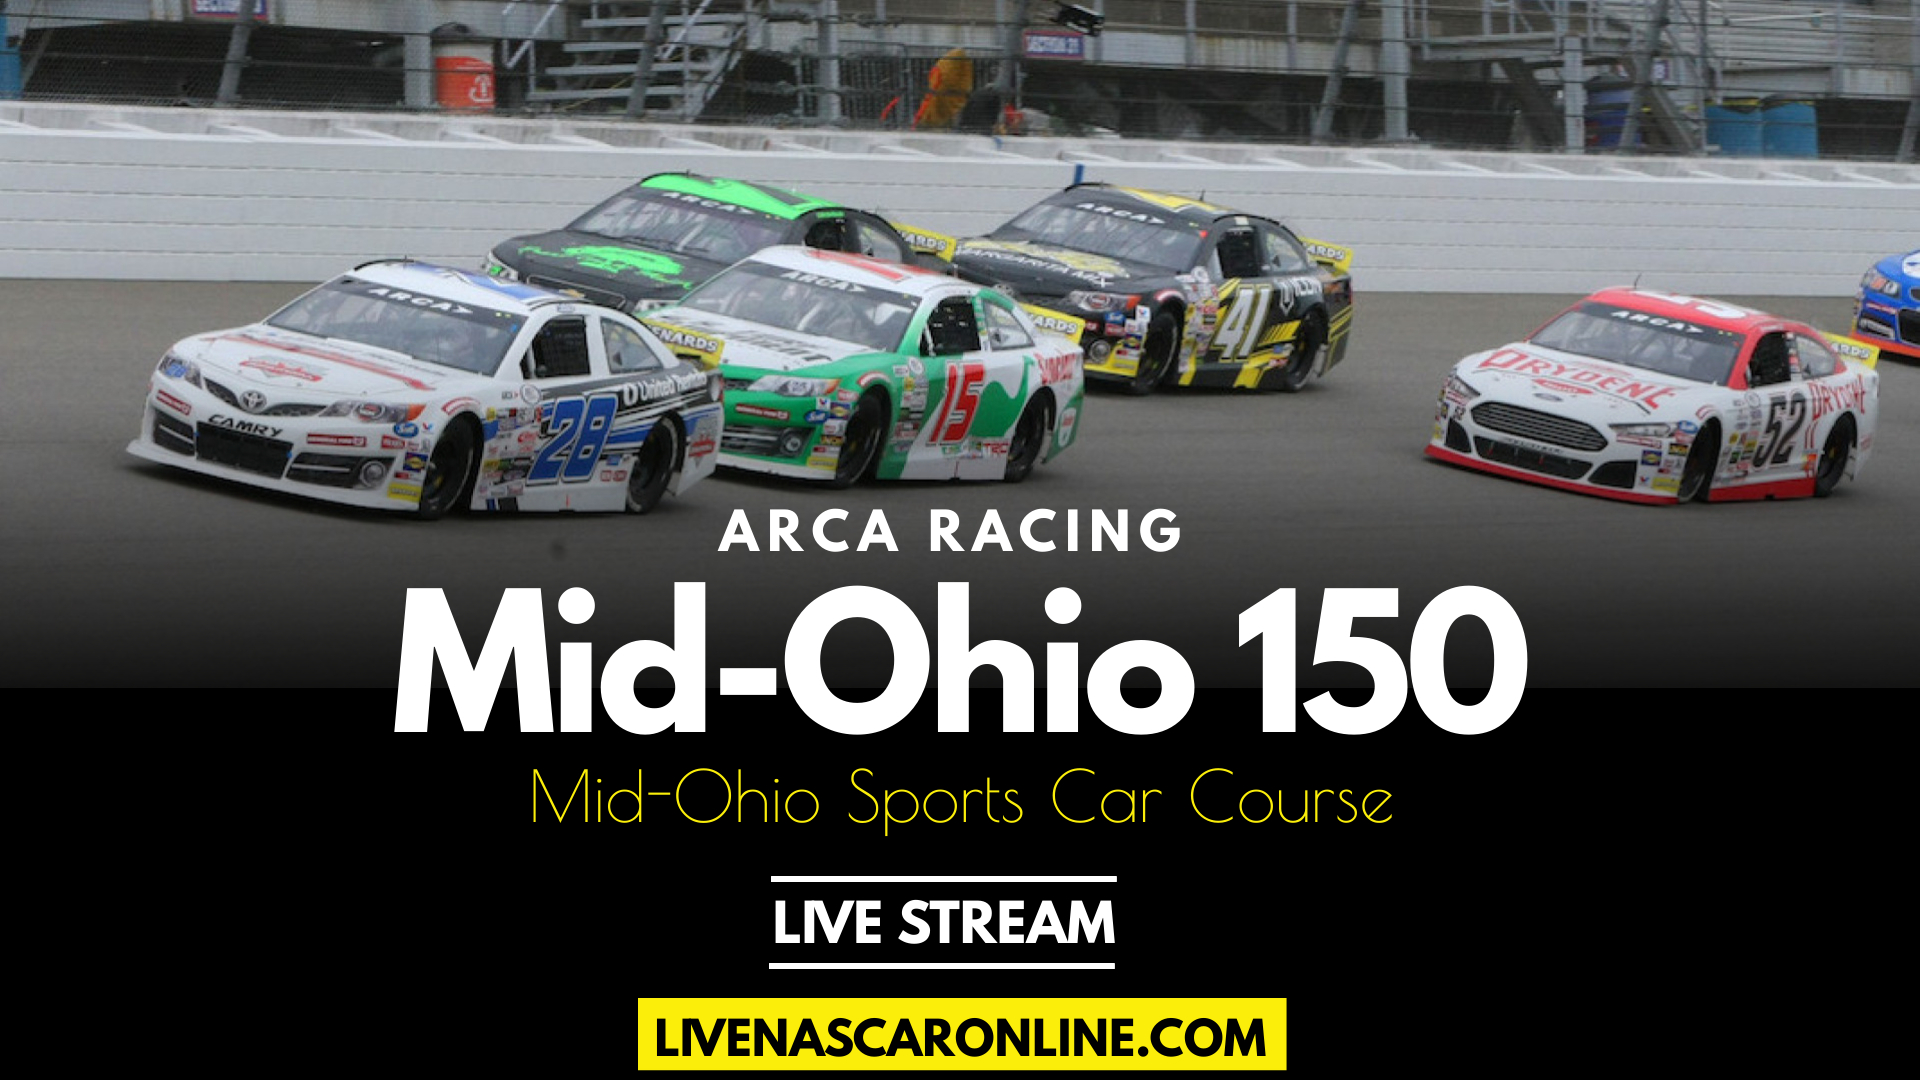 ARCA Mid-Ohio 150 Live Stream 2021